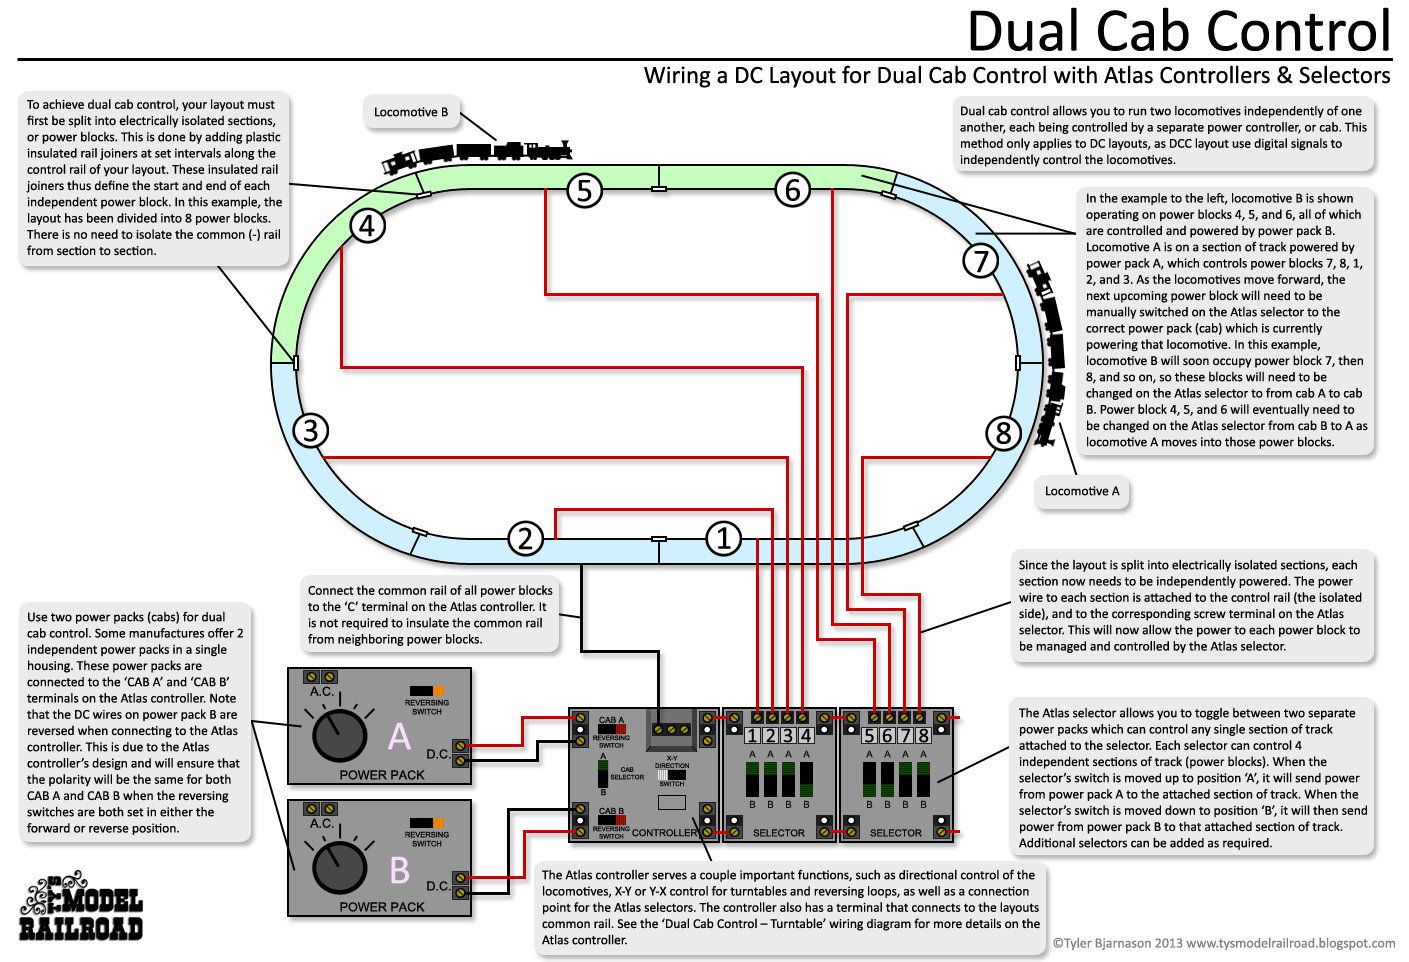 O Gauge Track Wiring | Wiring Diagram on pinout diagrams, battery diagrams, sincgars radio configurations diagrams, electronic circuit diagrams, electrical diagrams, friendship bracelet diagrams, engine diagrams, honda motorcycle repair diagrams, led circuit diagrams, lighting diagrams, internet of things diagrams, snatch block diagrams, gmc fuse box diagrams, troubleshooting diagrams, hvac diagrams, motor diagrams, transformer diagrams, smart car diagrams, switch diagrams, series and parallel circuits diagrams,